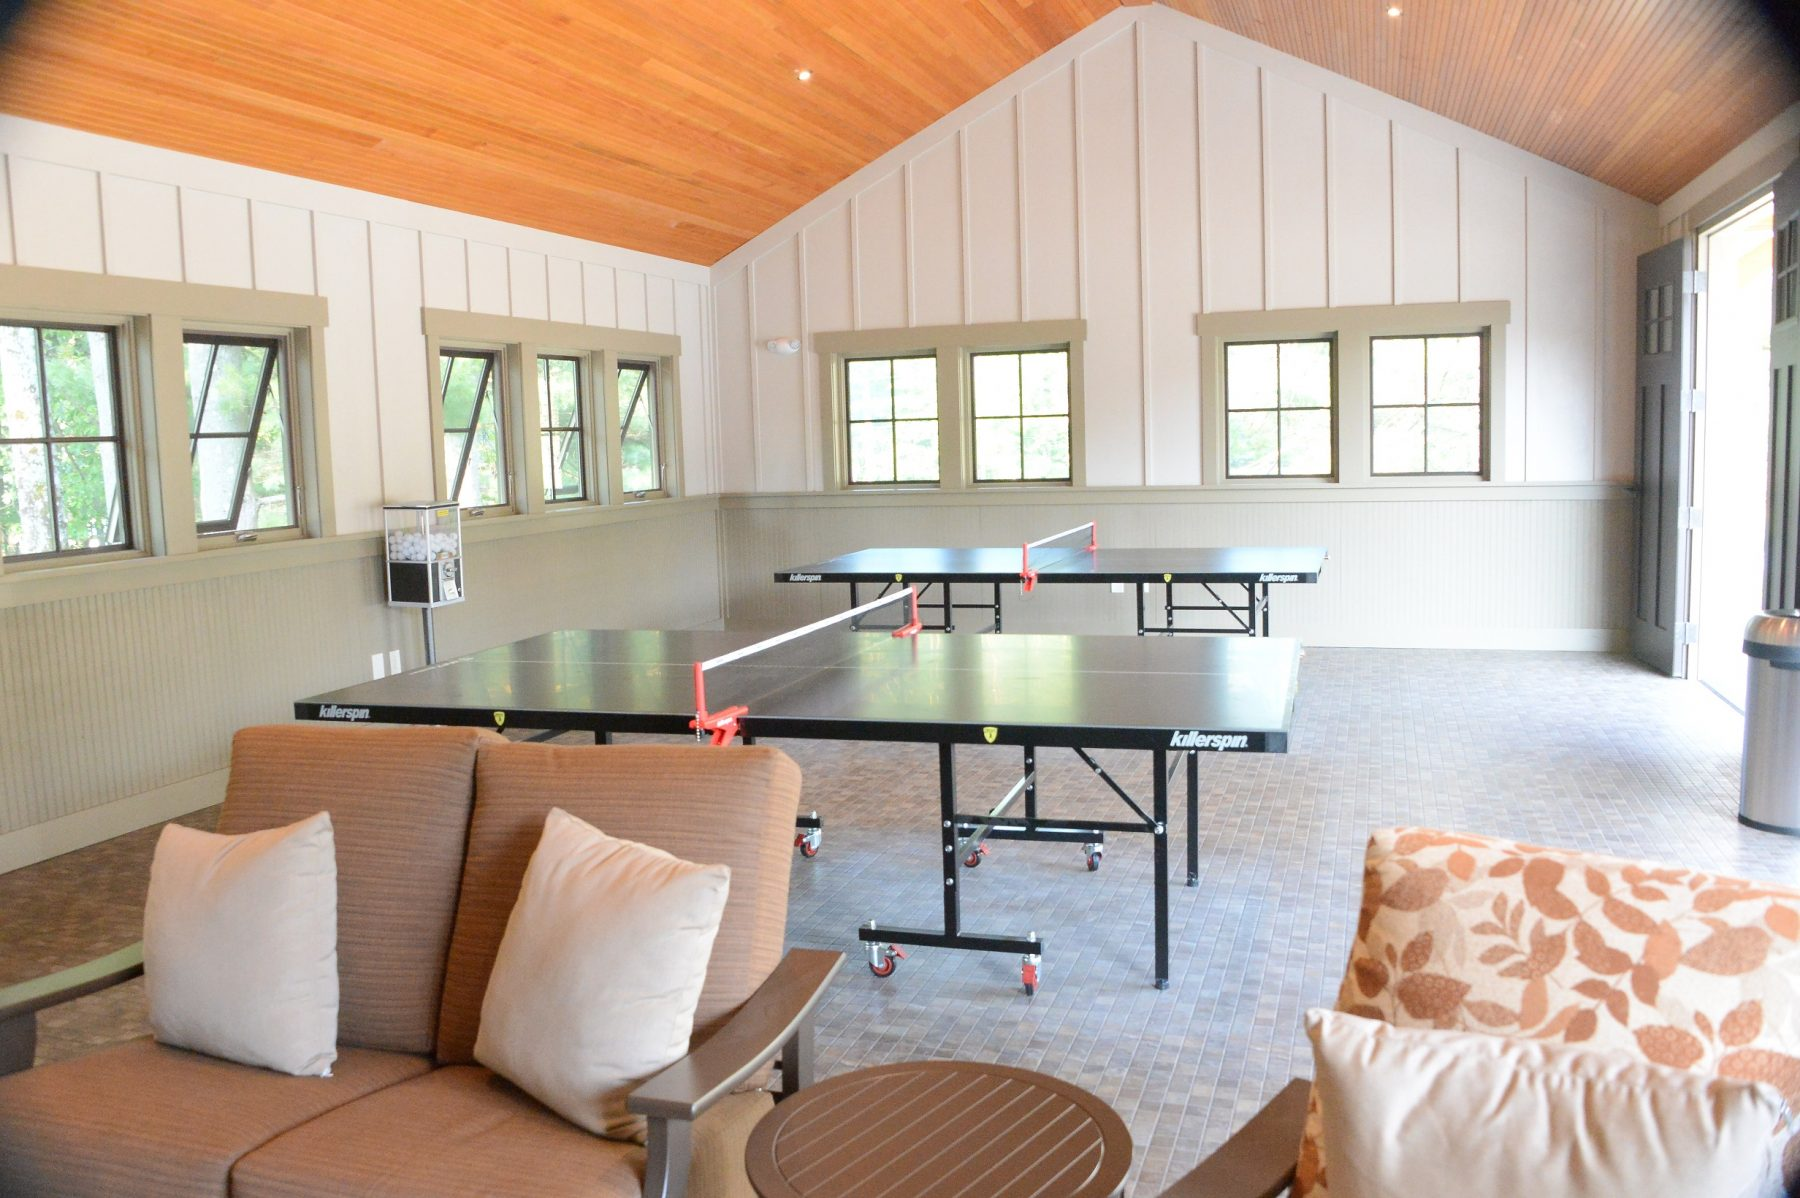 In the recreation room there are two ping pong tables in the background of the photo with a ping pong ball dispenser located in between them to the far left. In the foreground of the photo there is a loveseat, a small circular table, and a chair for guests to lounge in.